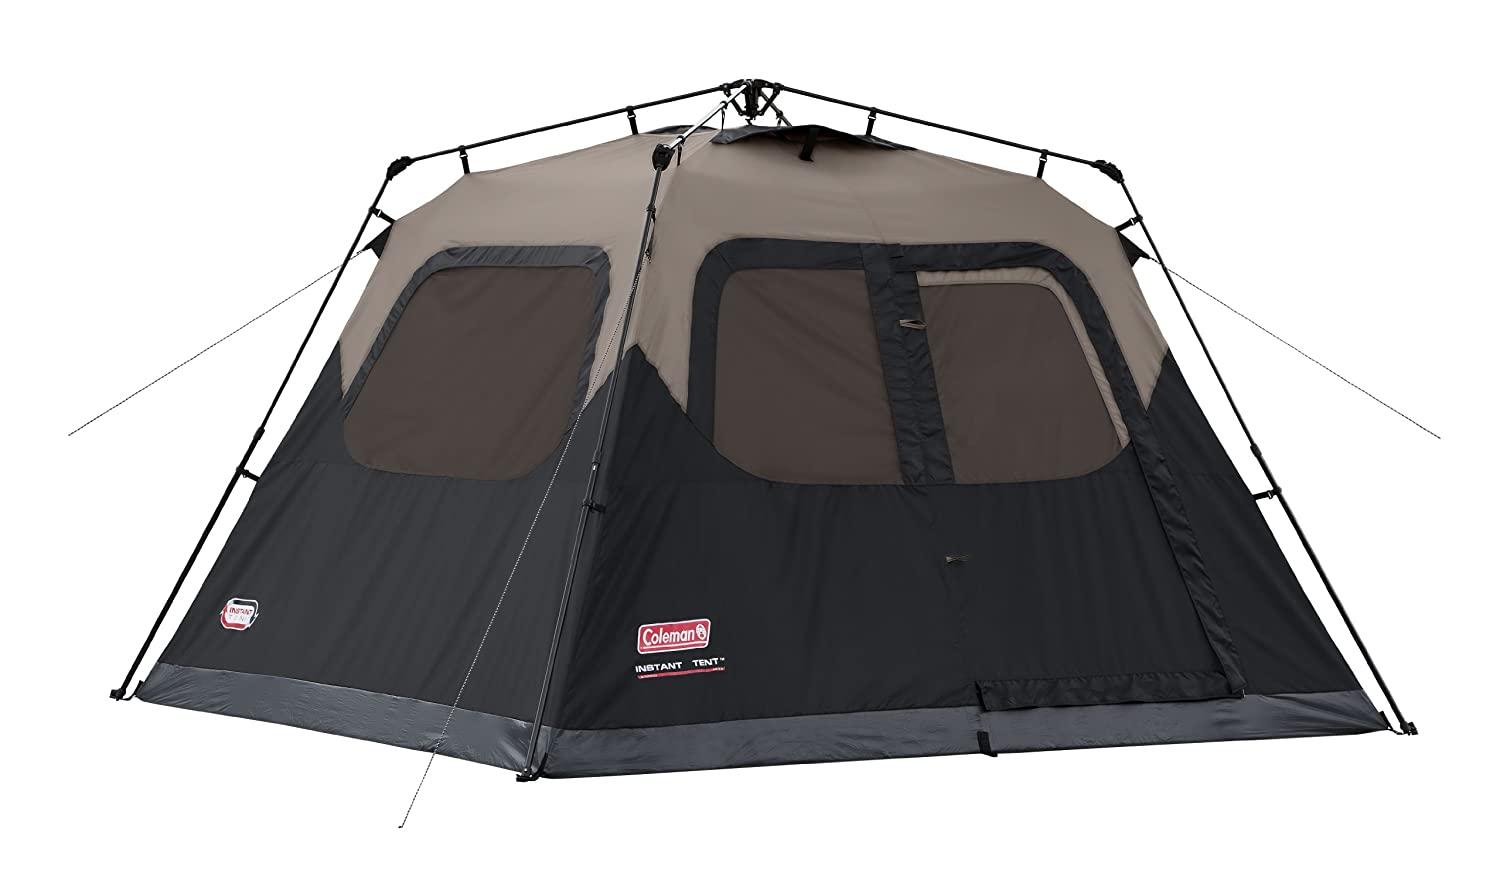 Coleman 6 Person Instant Tent : Top best family camping tents for sale in reviews